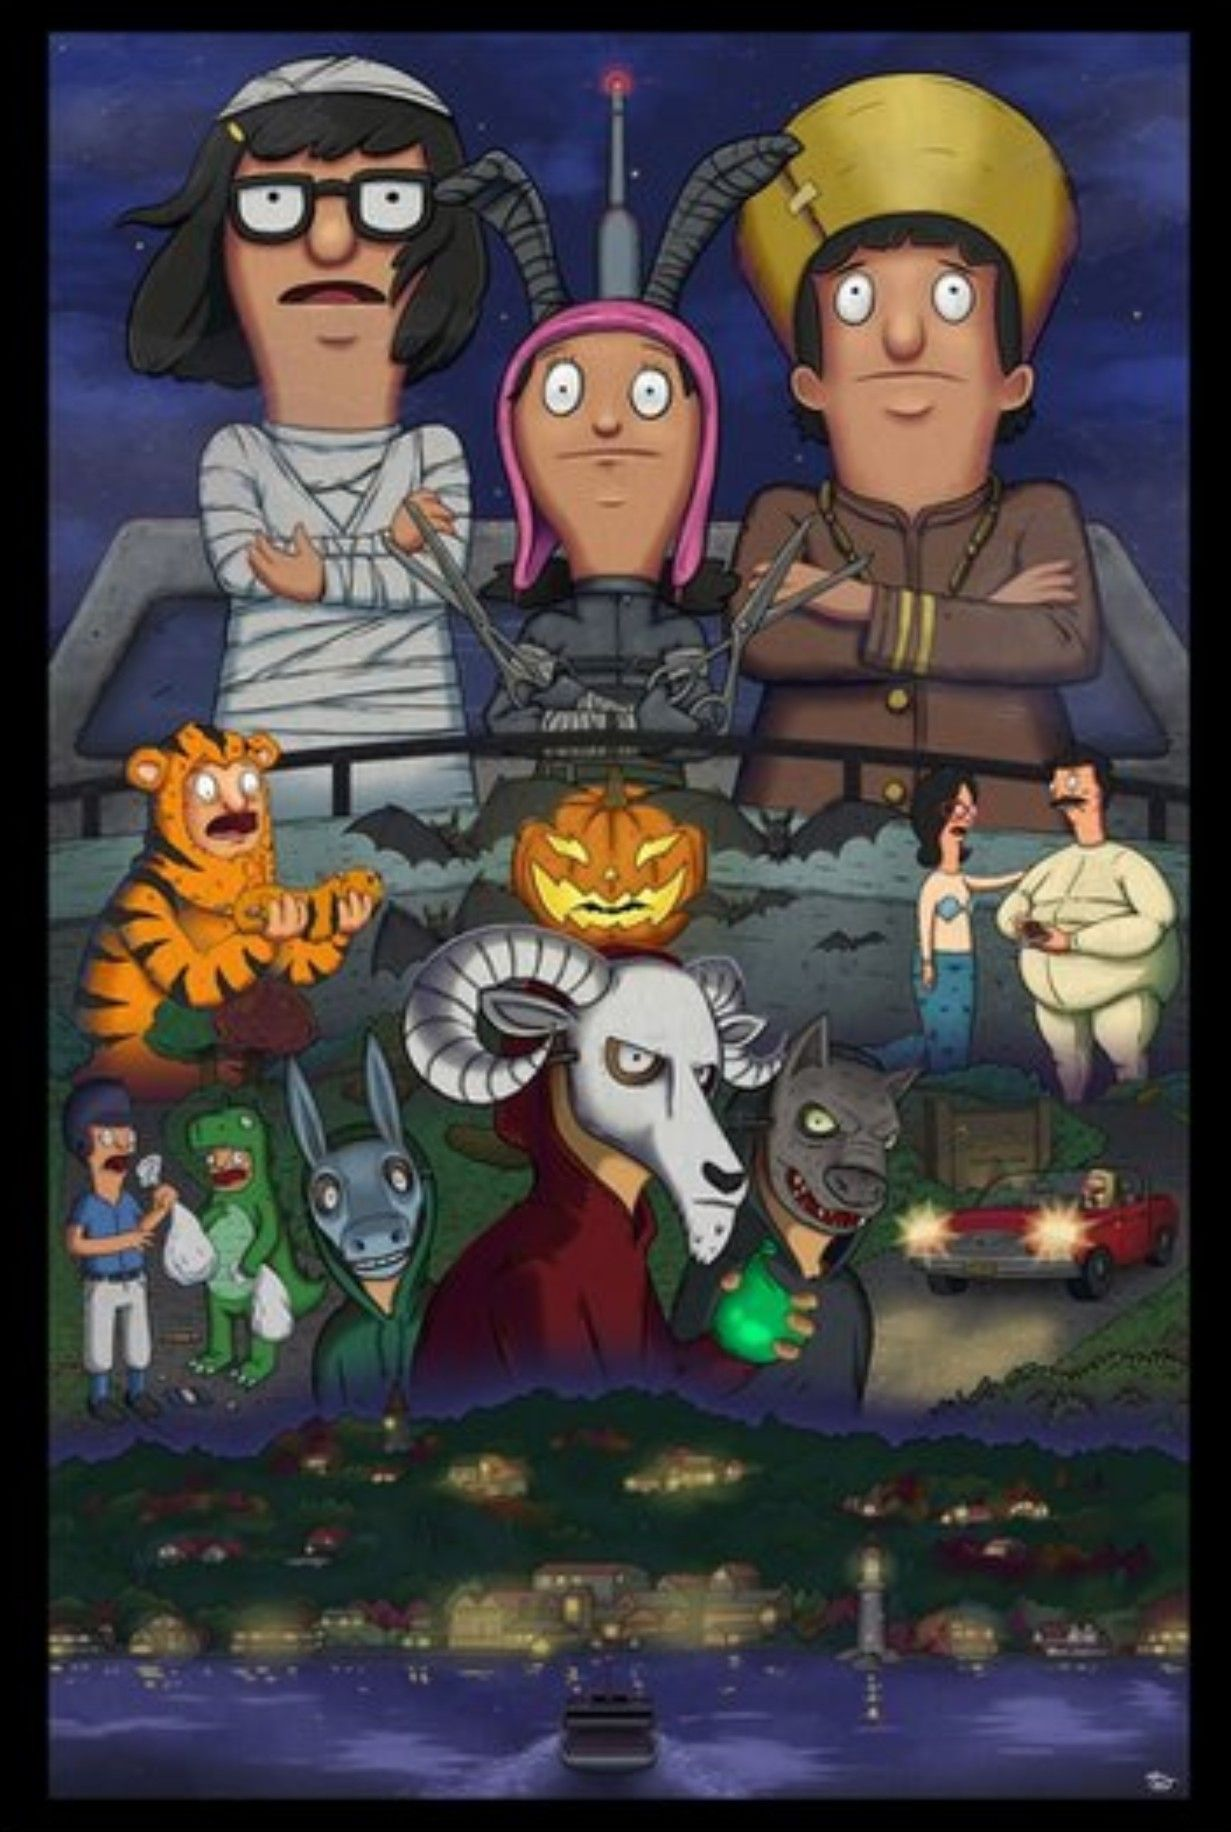 bobs burger halloween bob linda go to teddys halloween party gene tina louise go trick or treating on kings head island where the rich folks live